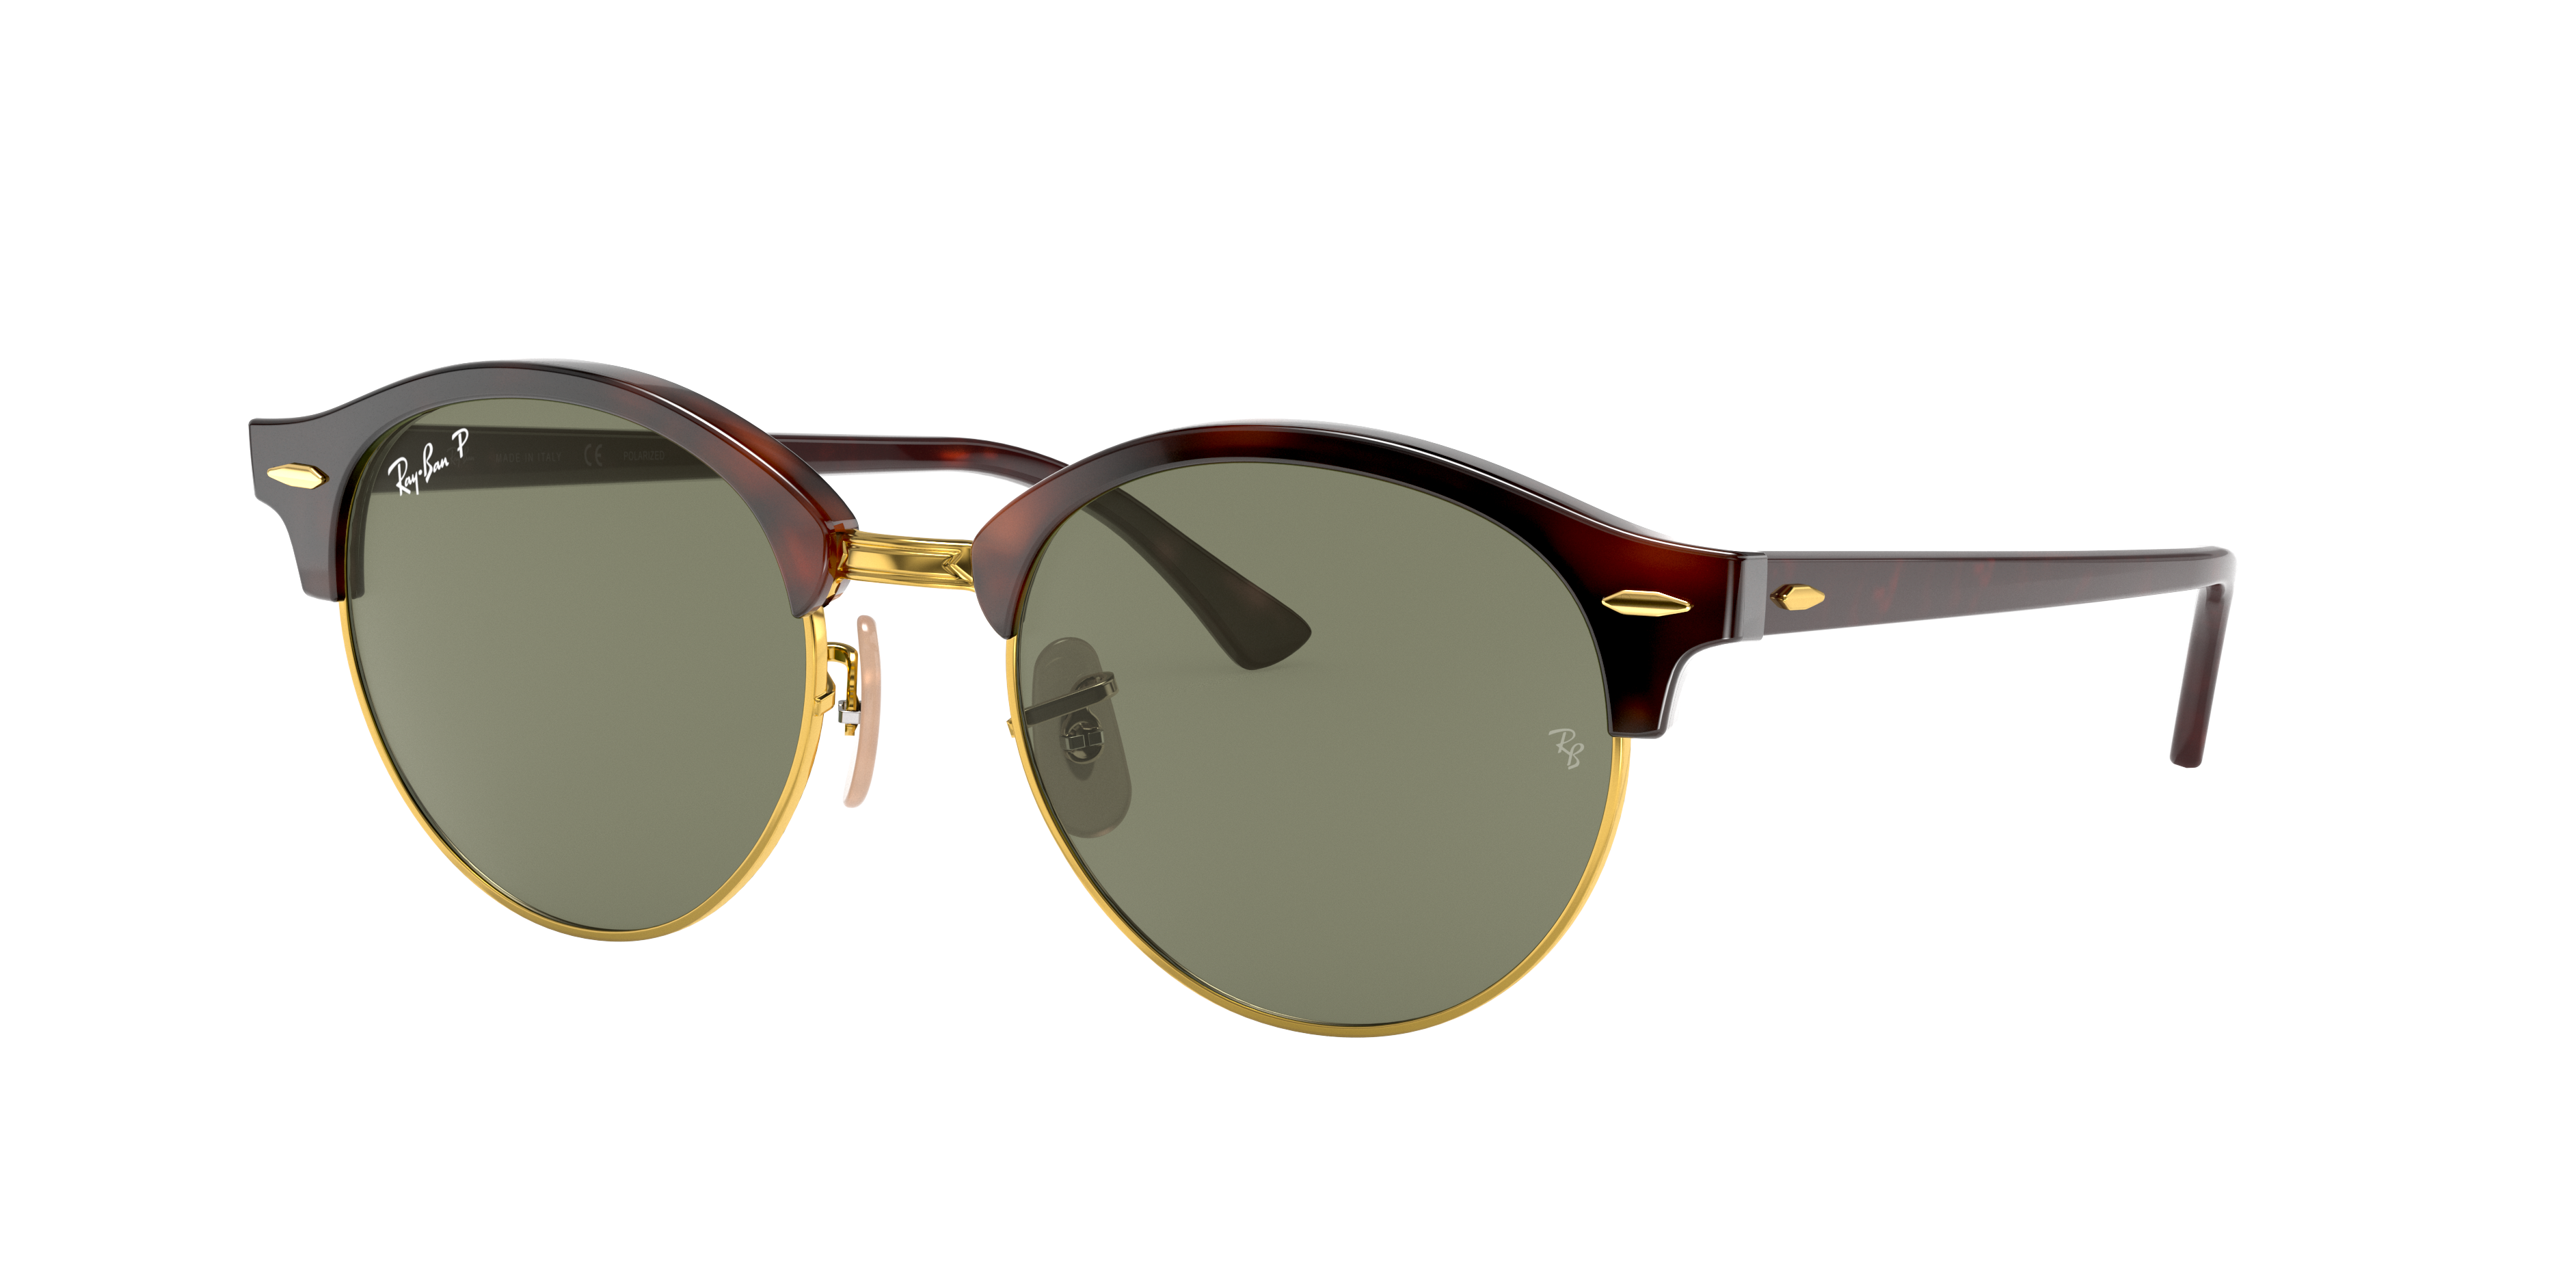 Ray-Ban Clubround Classic Tortoise, Polarized Green Lenses - RB4246